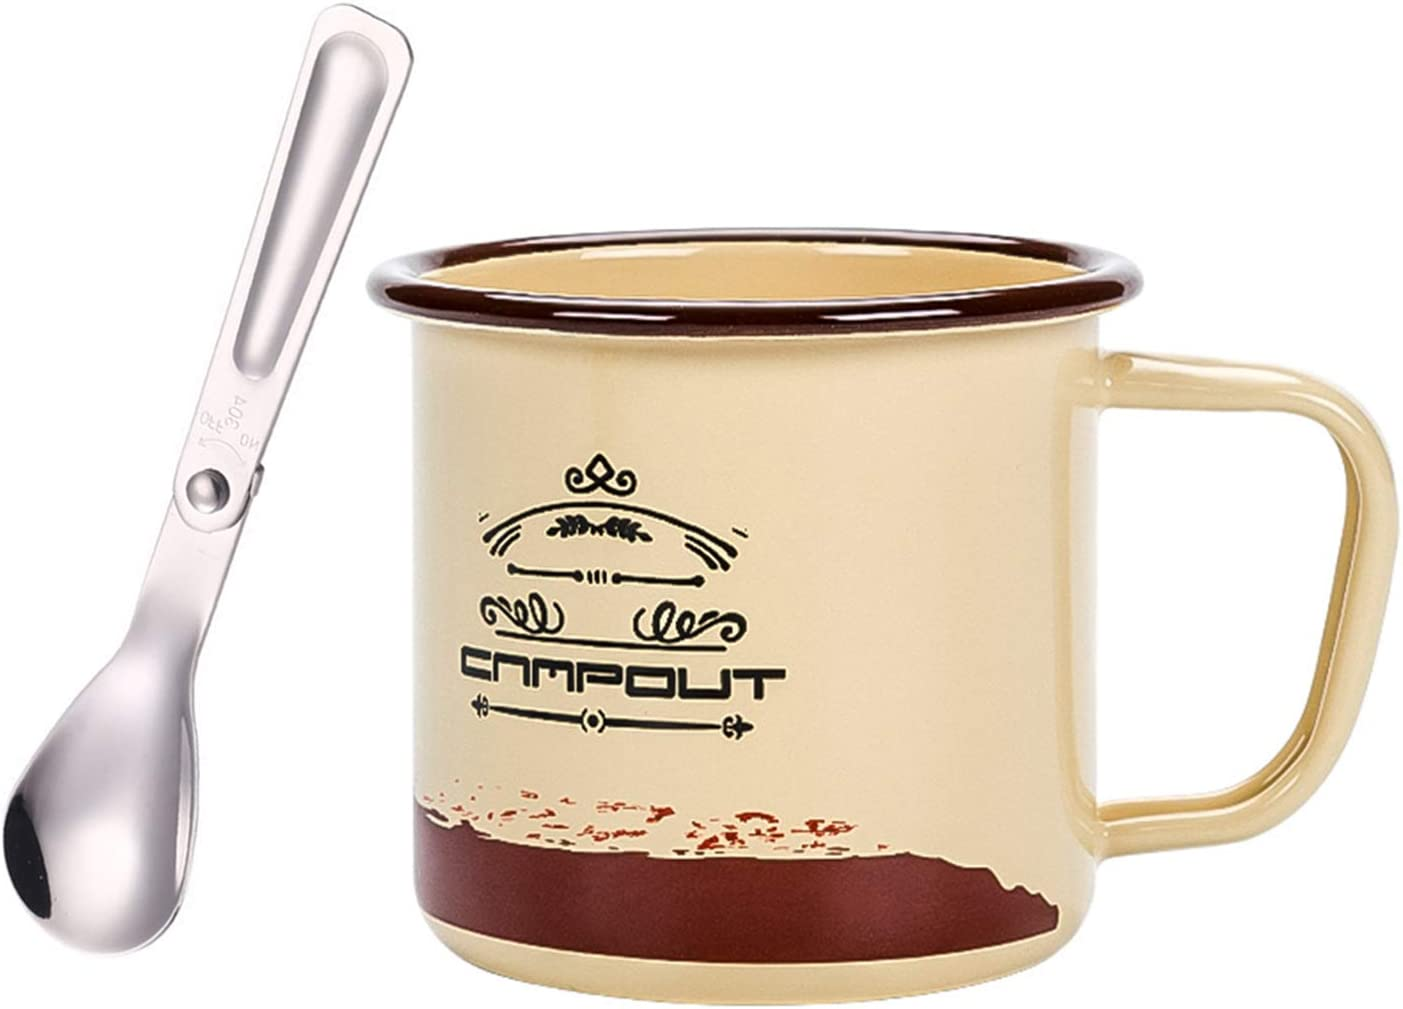 DZRZVD Enamel Credence Mugs Camping Cups Coffee Camp 40% OFF Cheap Sale Tea Drinking Mug Cup